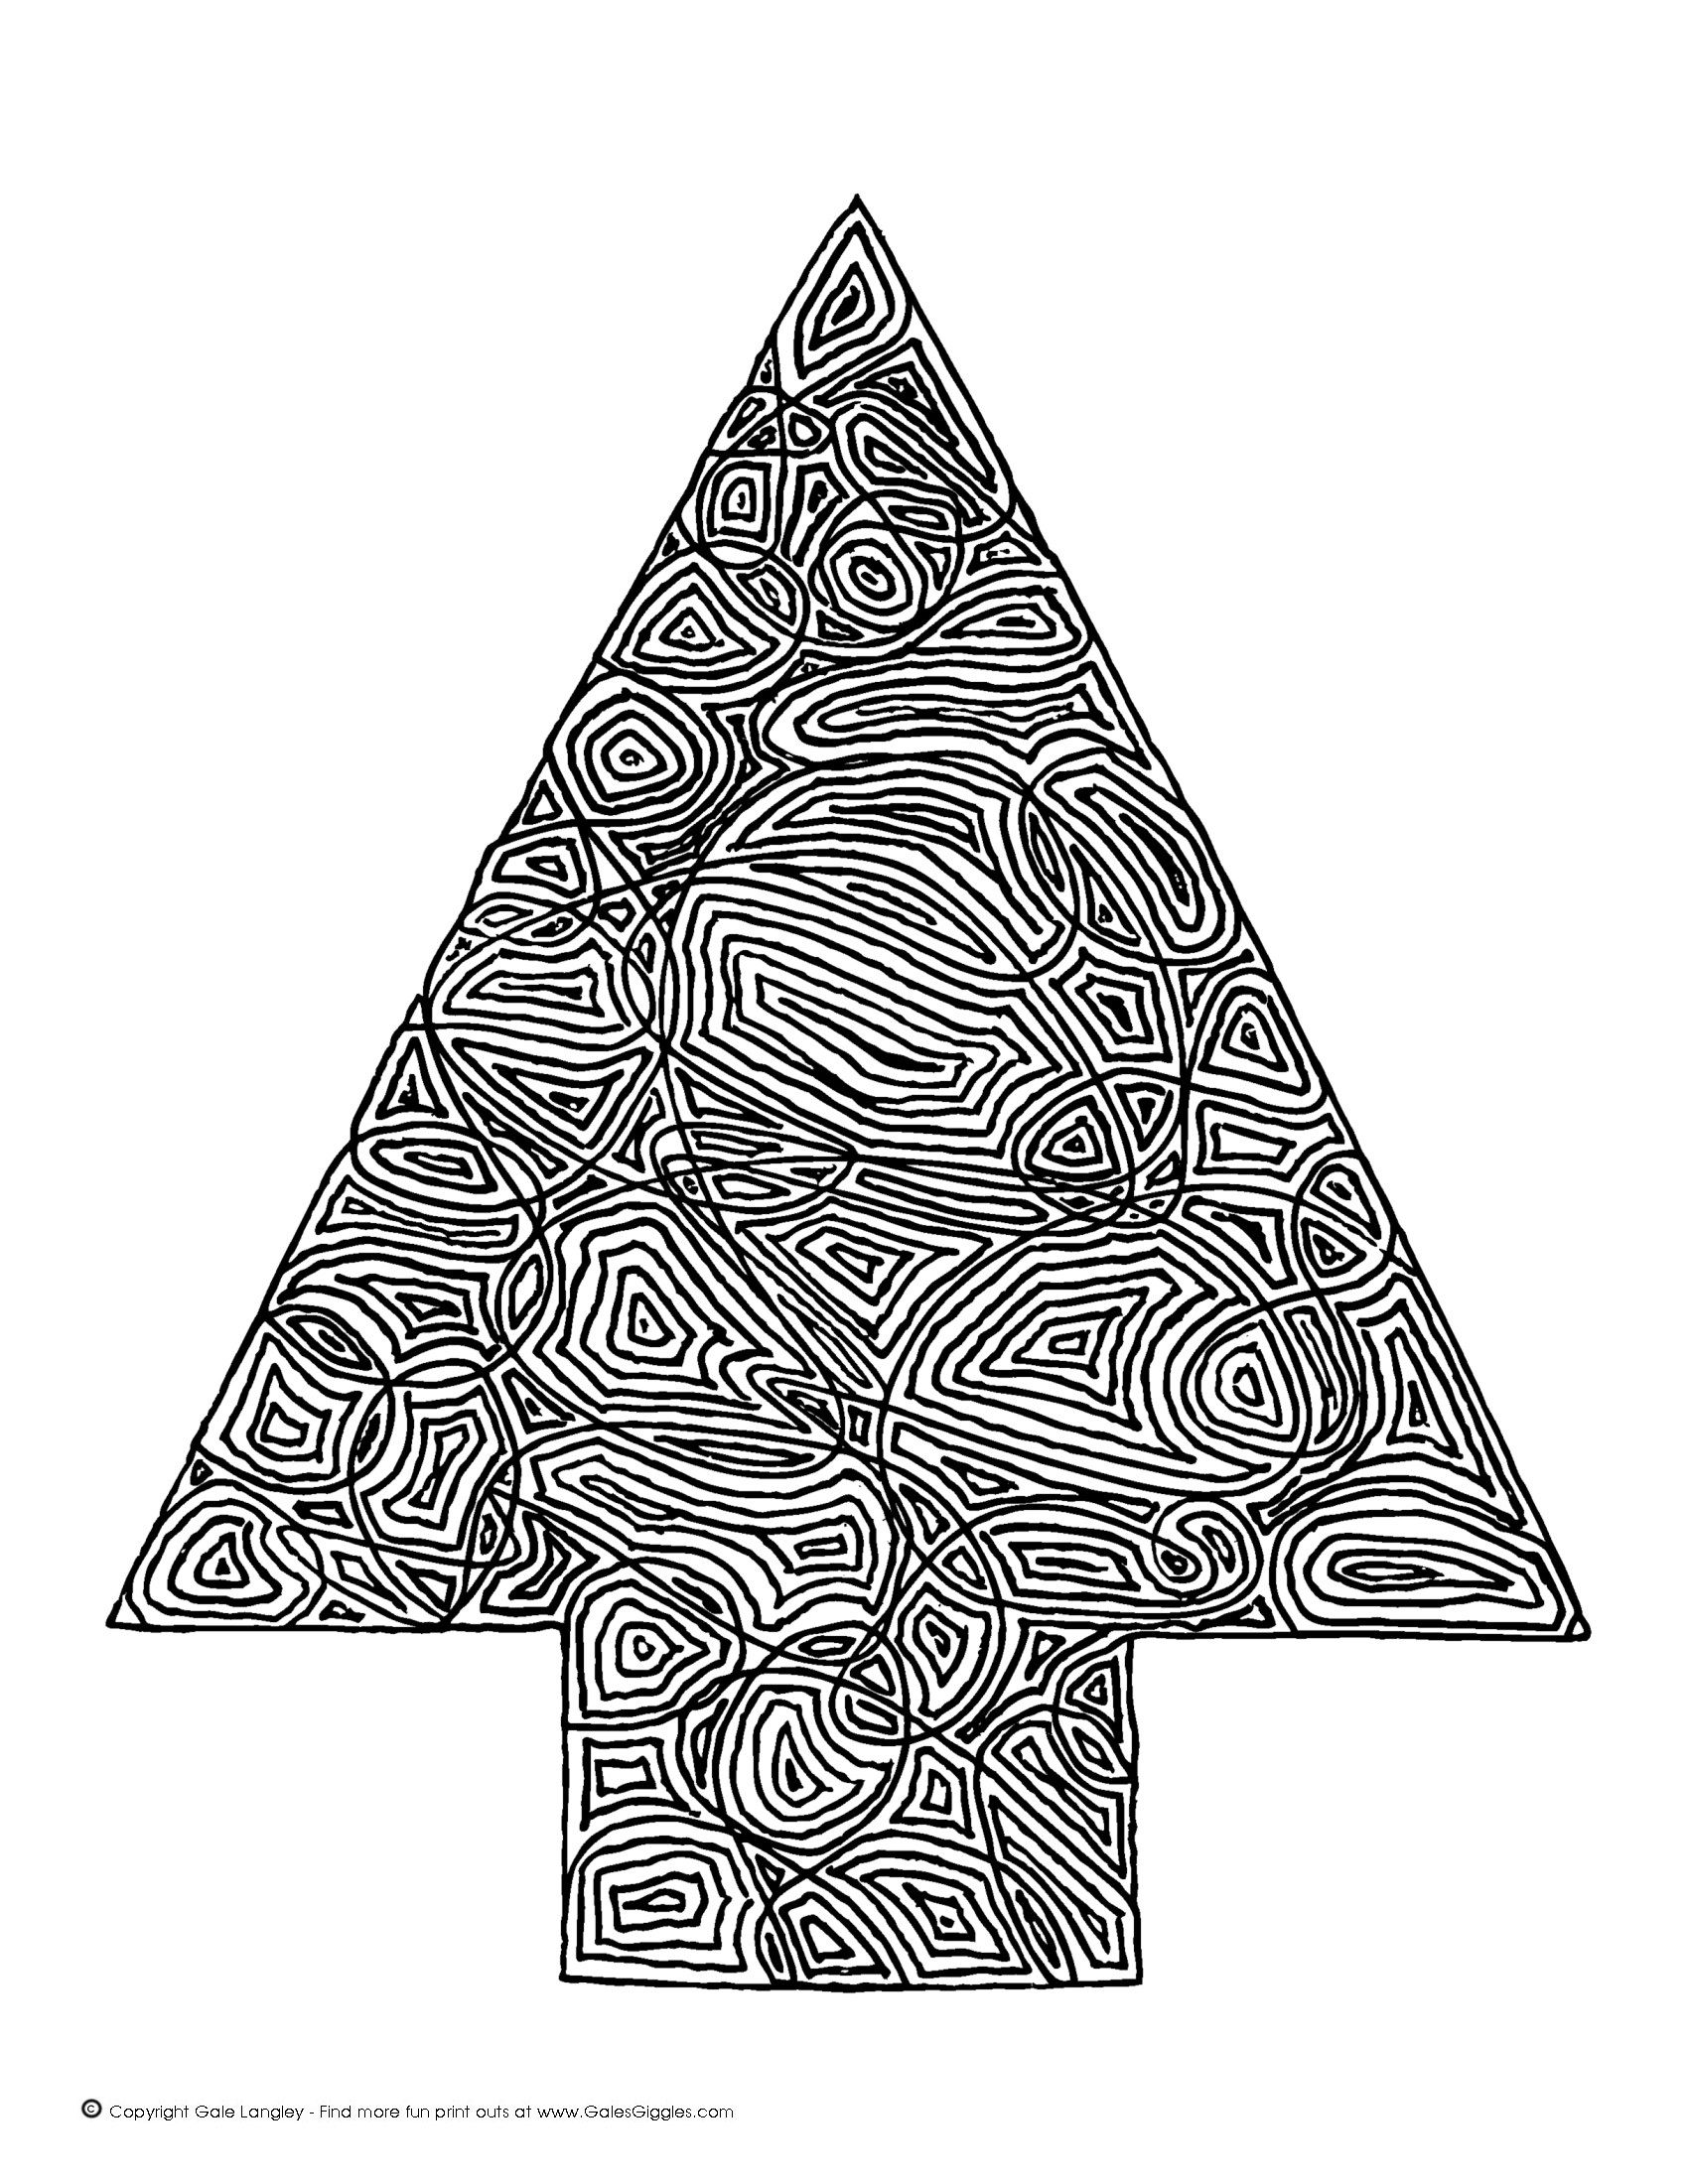 enjoy a free christmas tree coloring page i designed i also have several other scribbleprint coloring page designs to choose from cl